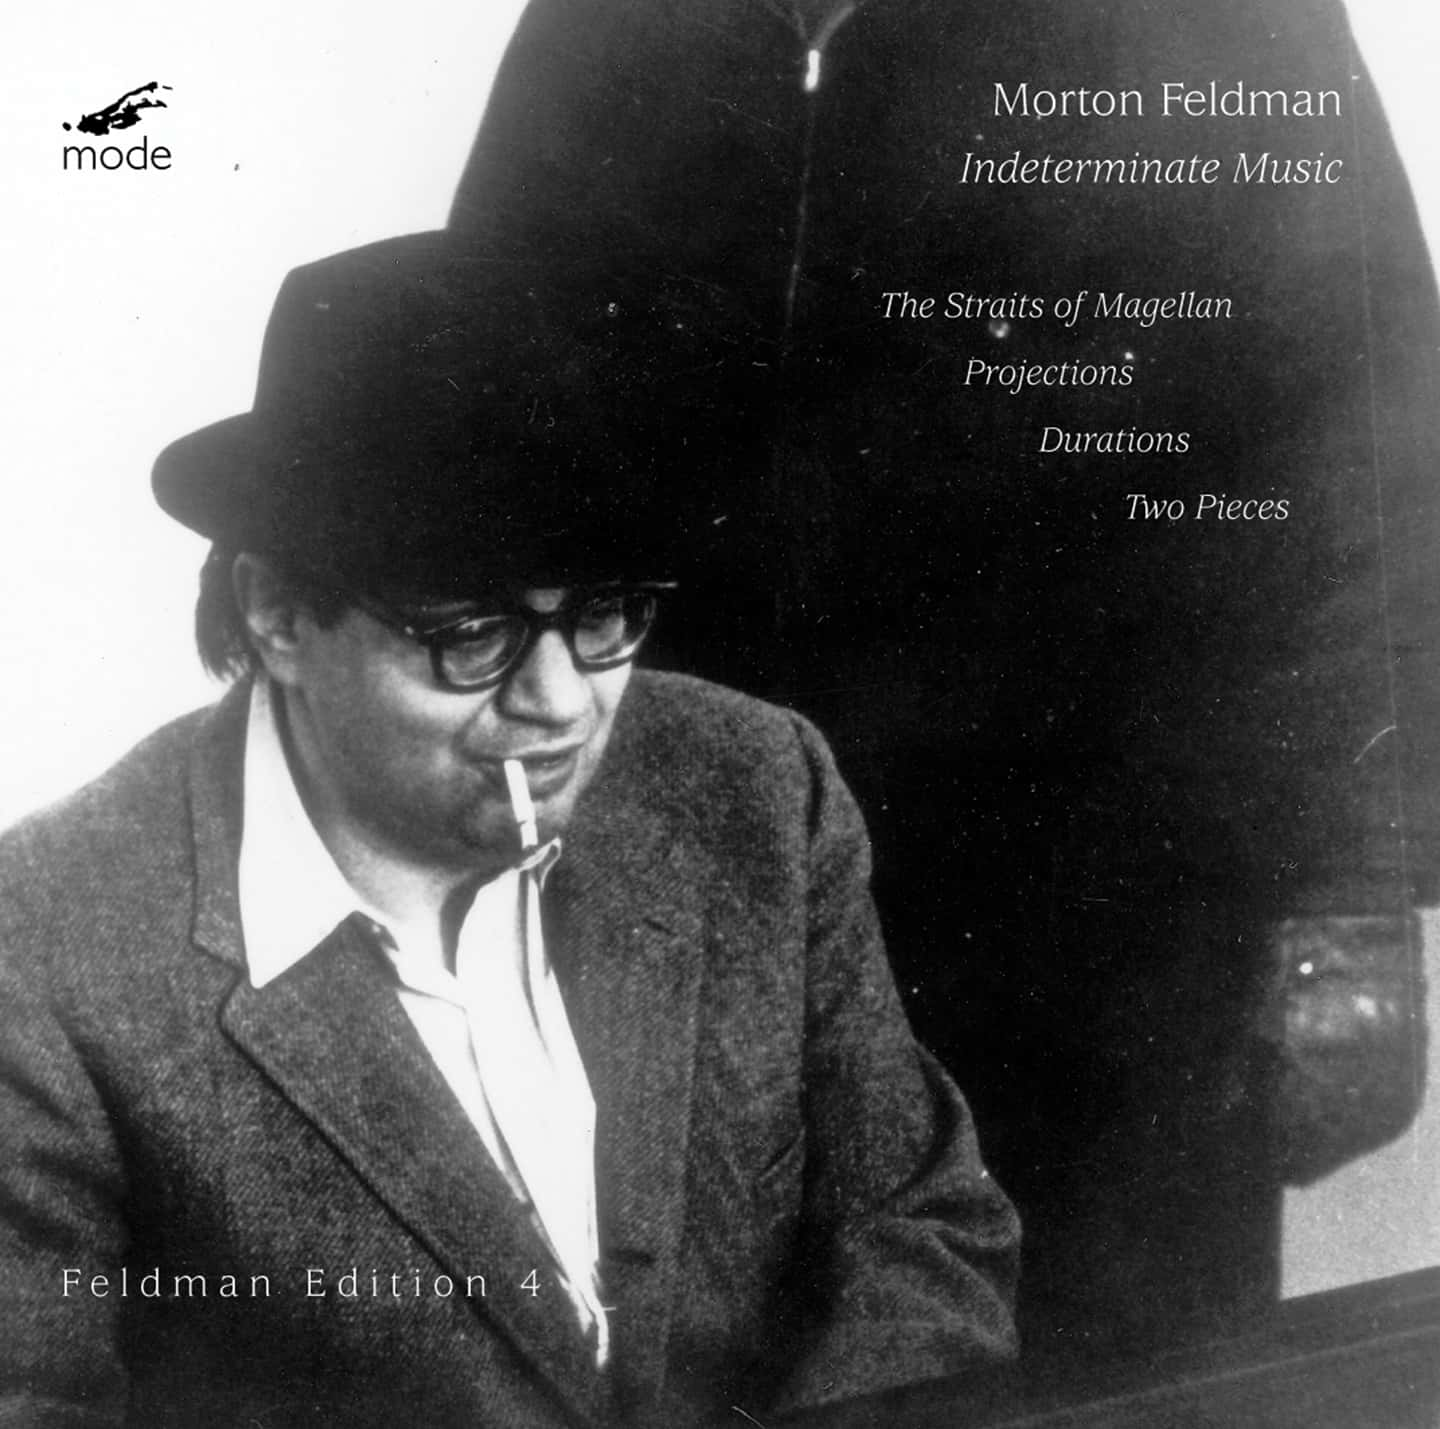 Feldman Edition 4–The Straits Of Magellan – Indeterminate Music